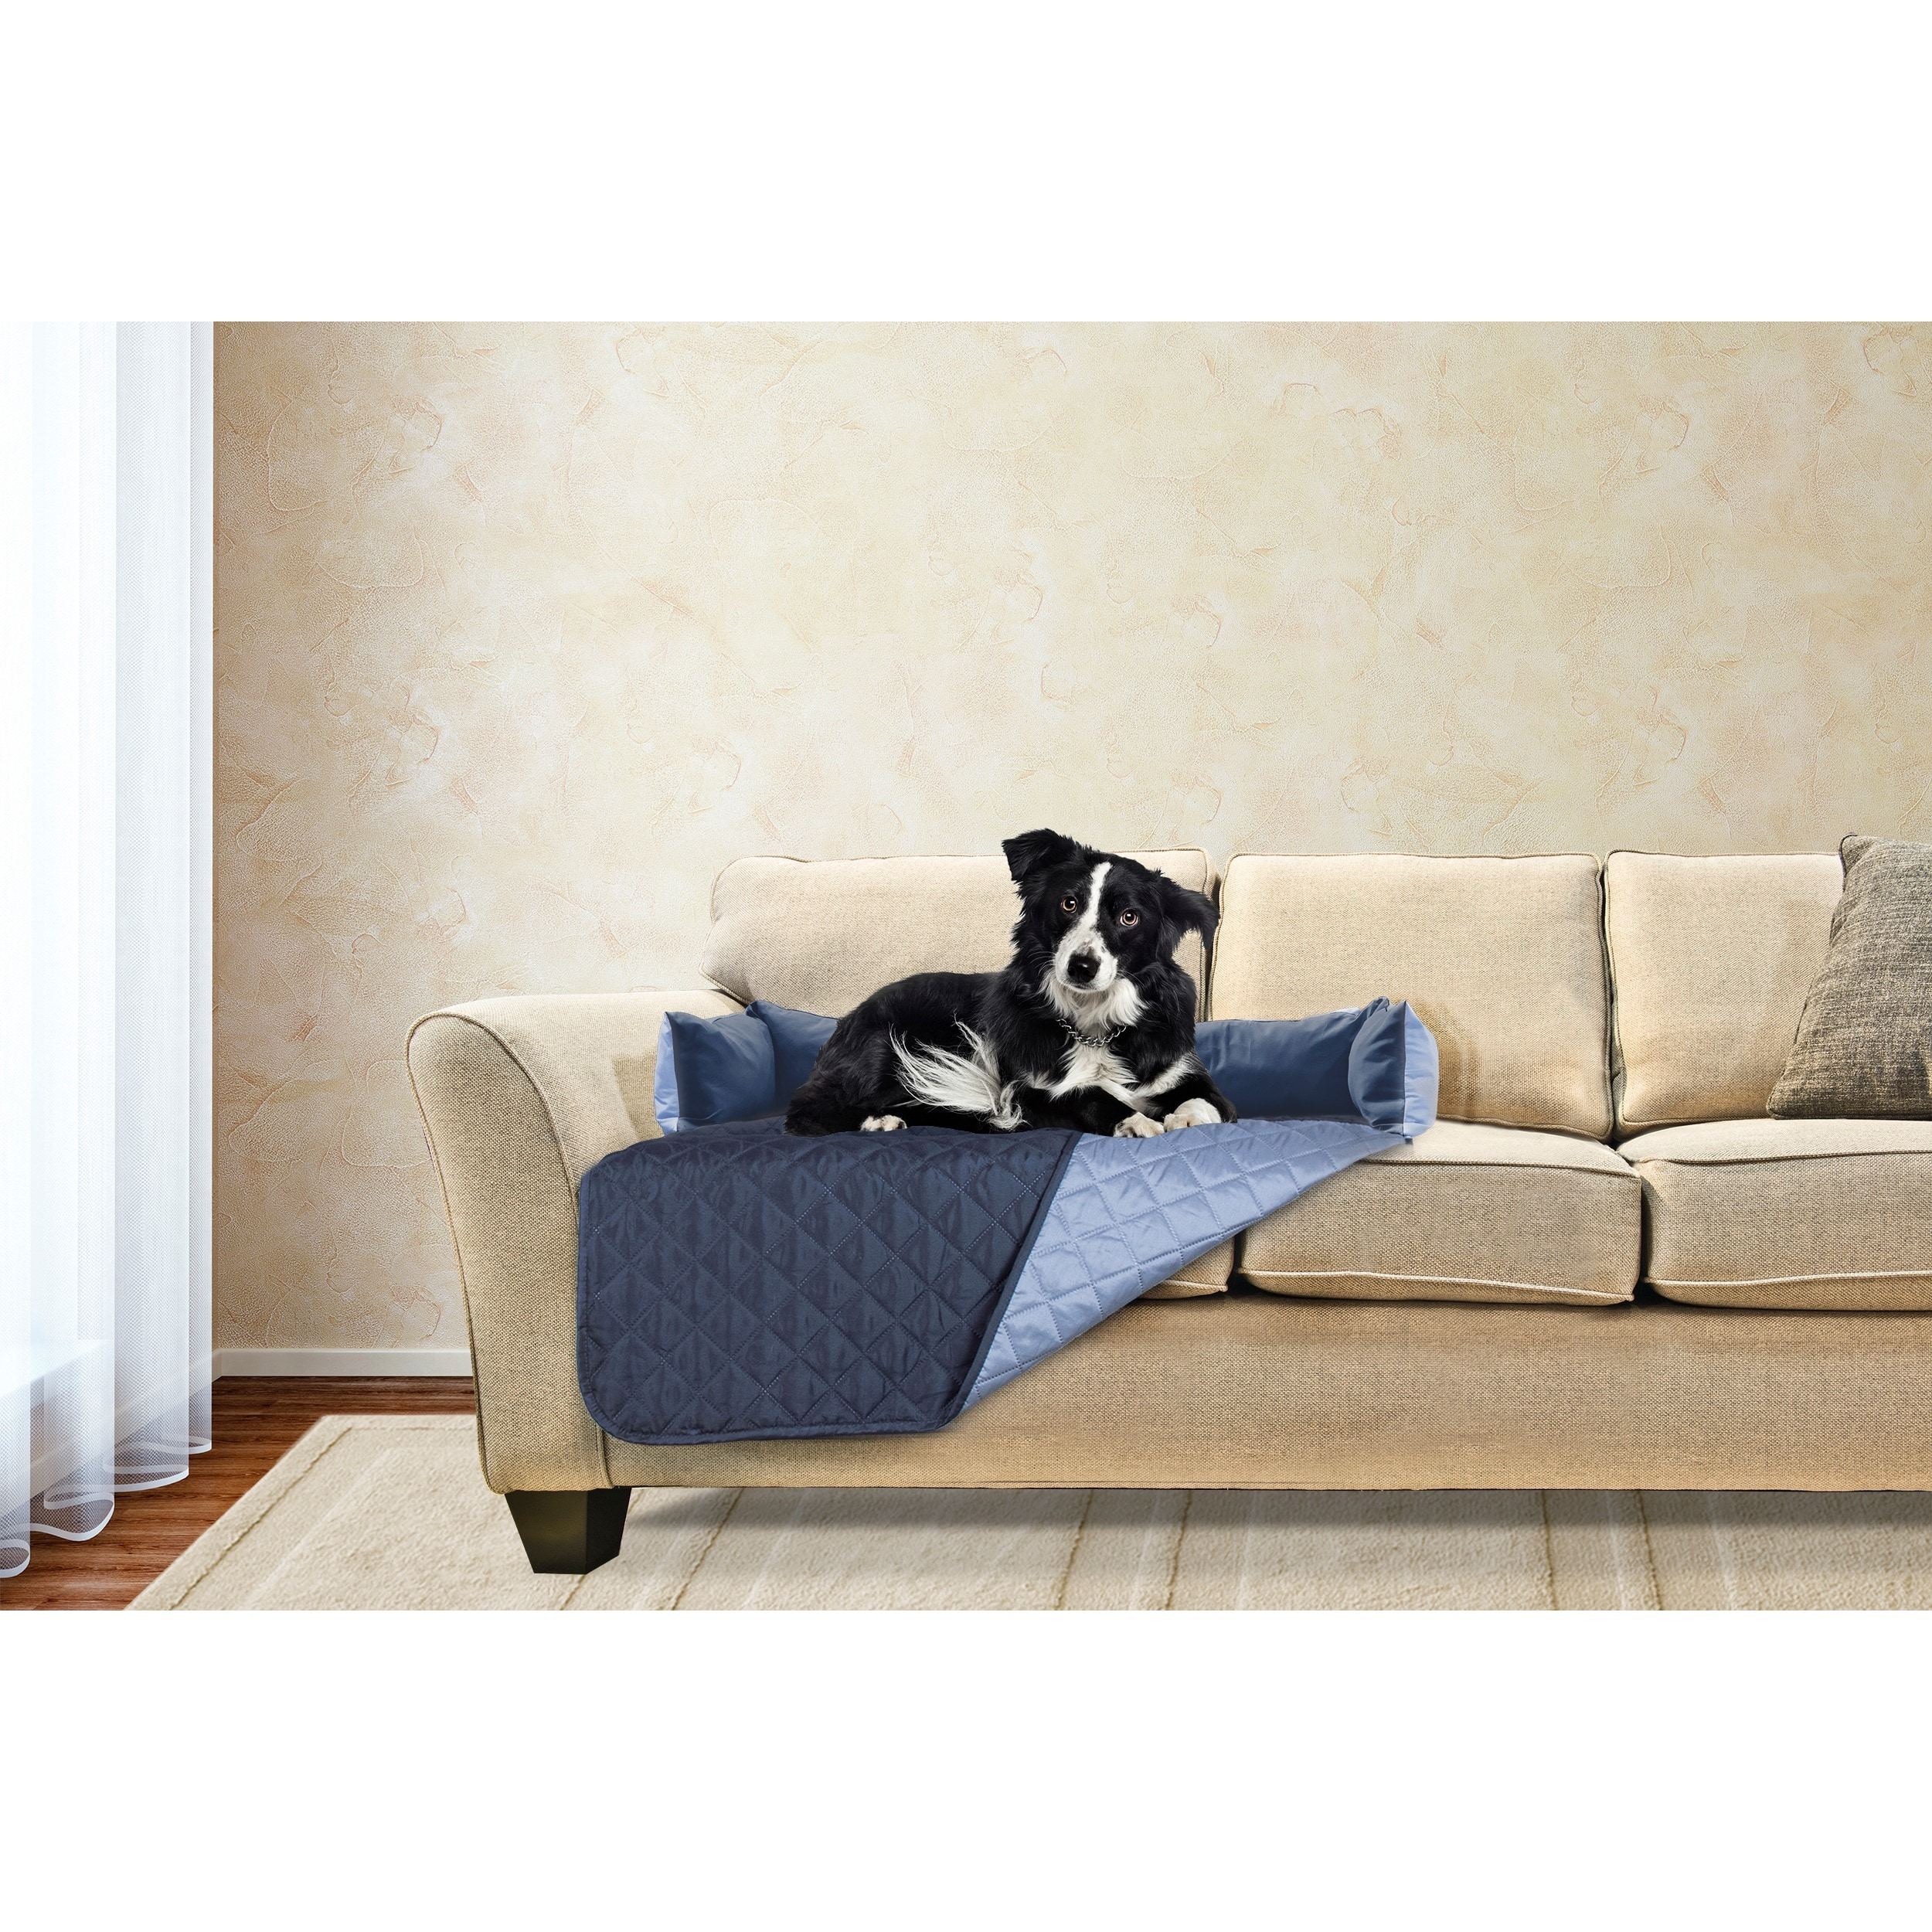 FurHaven Sofa Buddy Pet Bed Furniture Cover Free Shipping On